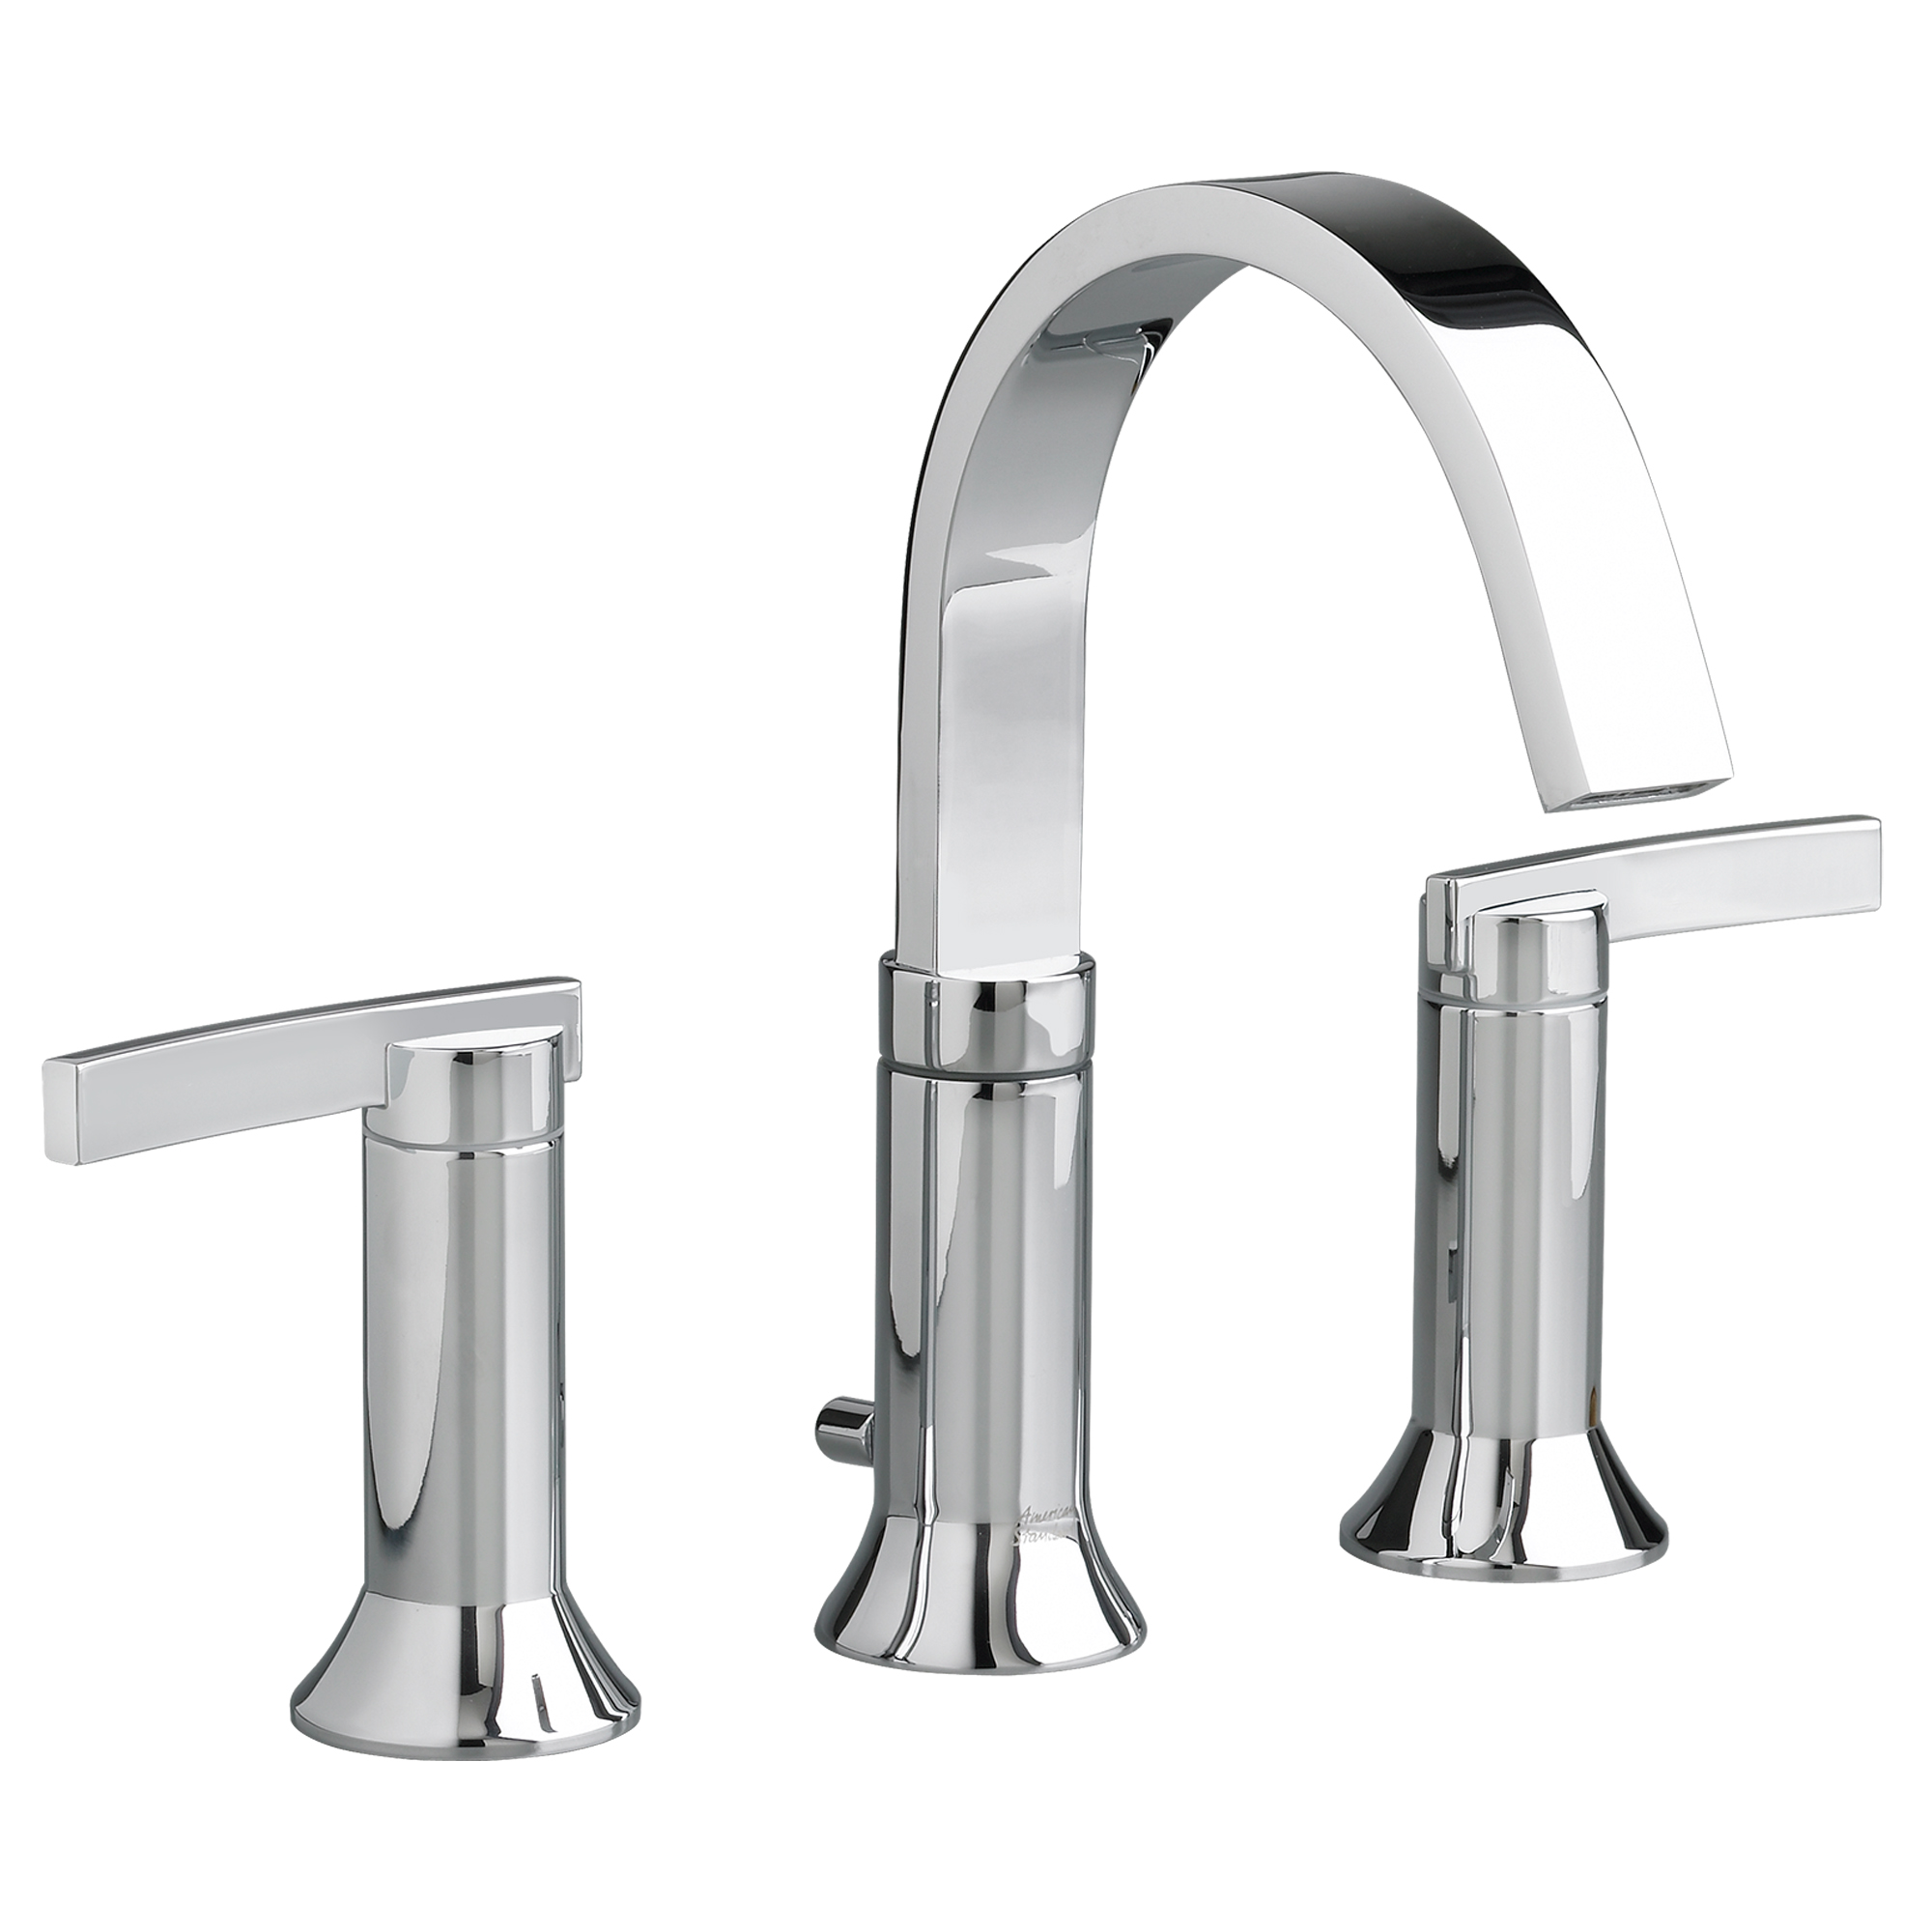 American Standard 7430.801.002 Berwick® Widespread Lavatory Faucet, 1.5 gpm Flow Rate, 6-1/16 in H Spout, 6 to 12 in Center, Polished Chrome, 2 Handles, Pop-Up Drain, Import